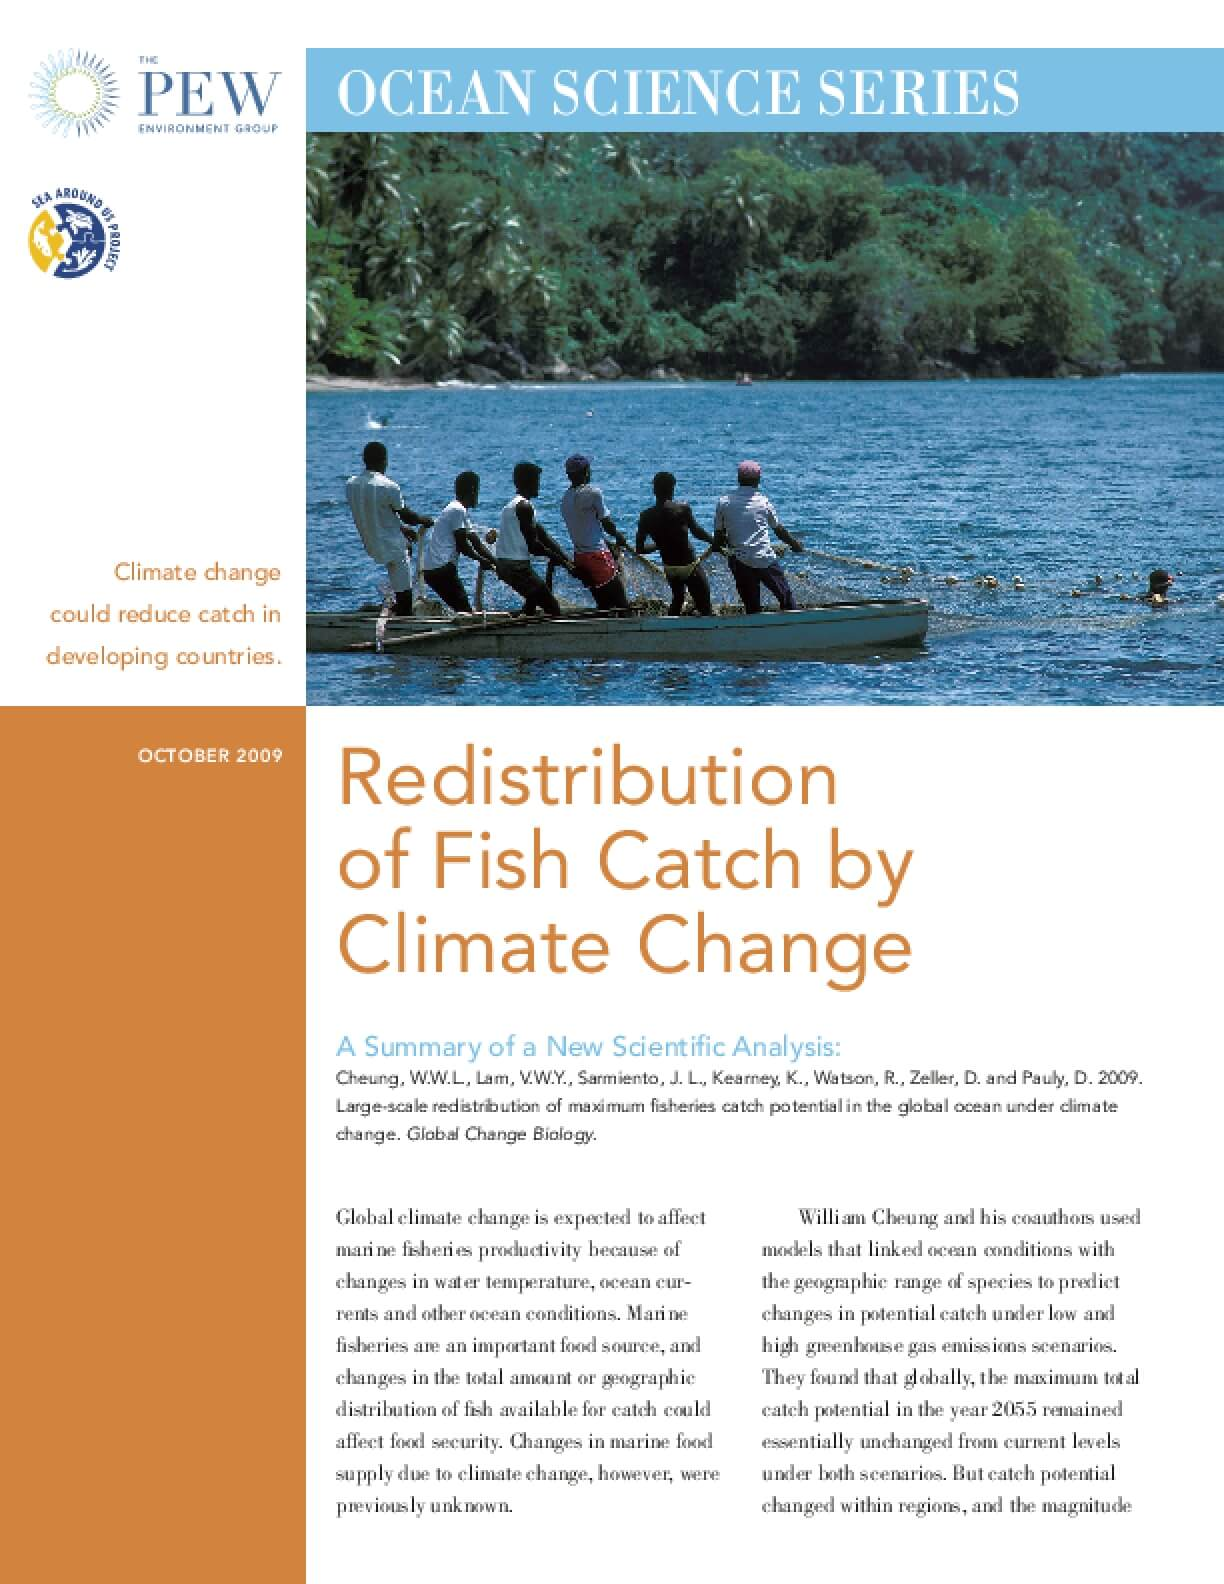 Ocean Science Series: Redistribution of Fish Catch by Climate Change